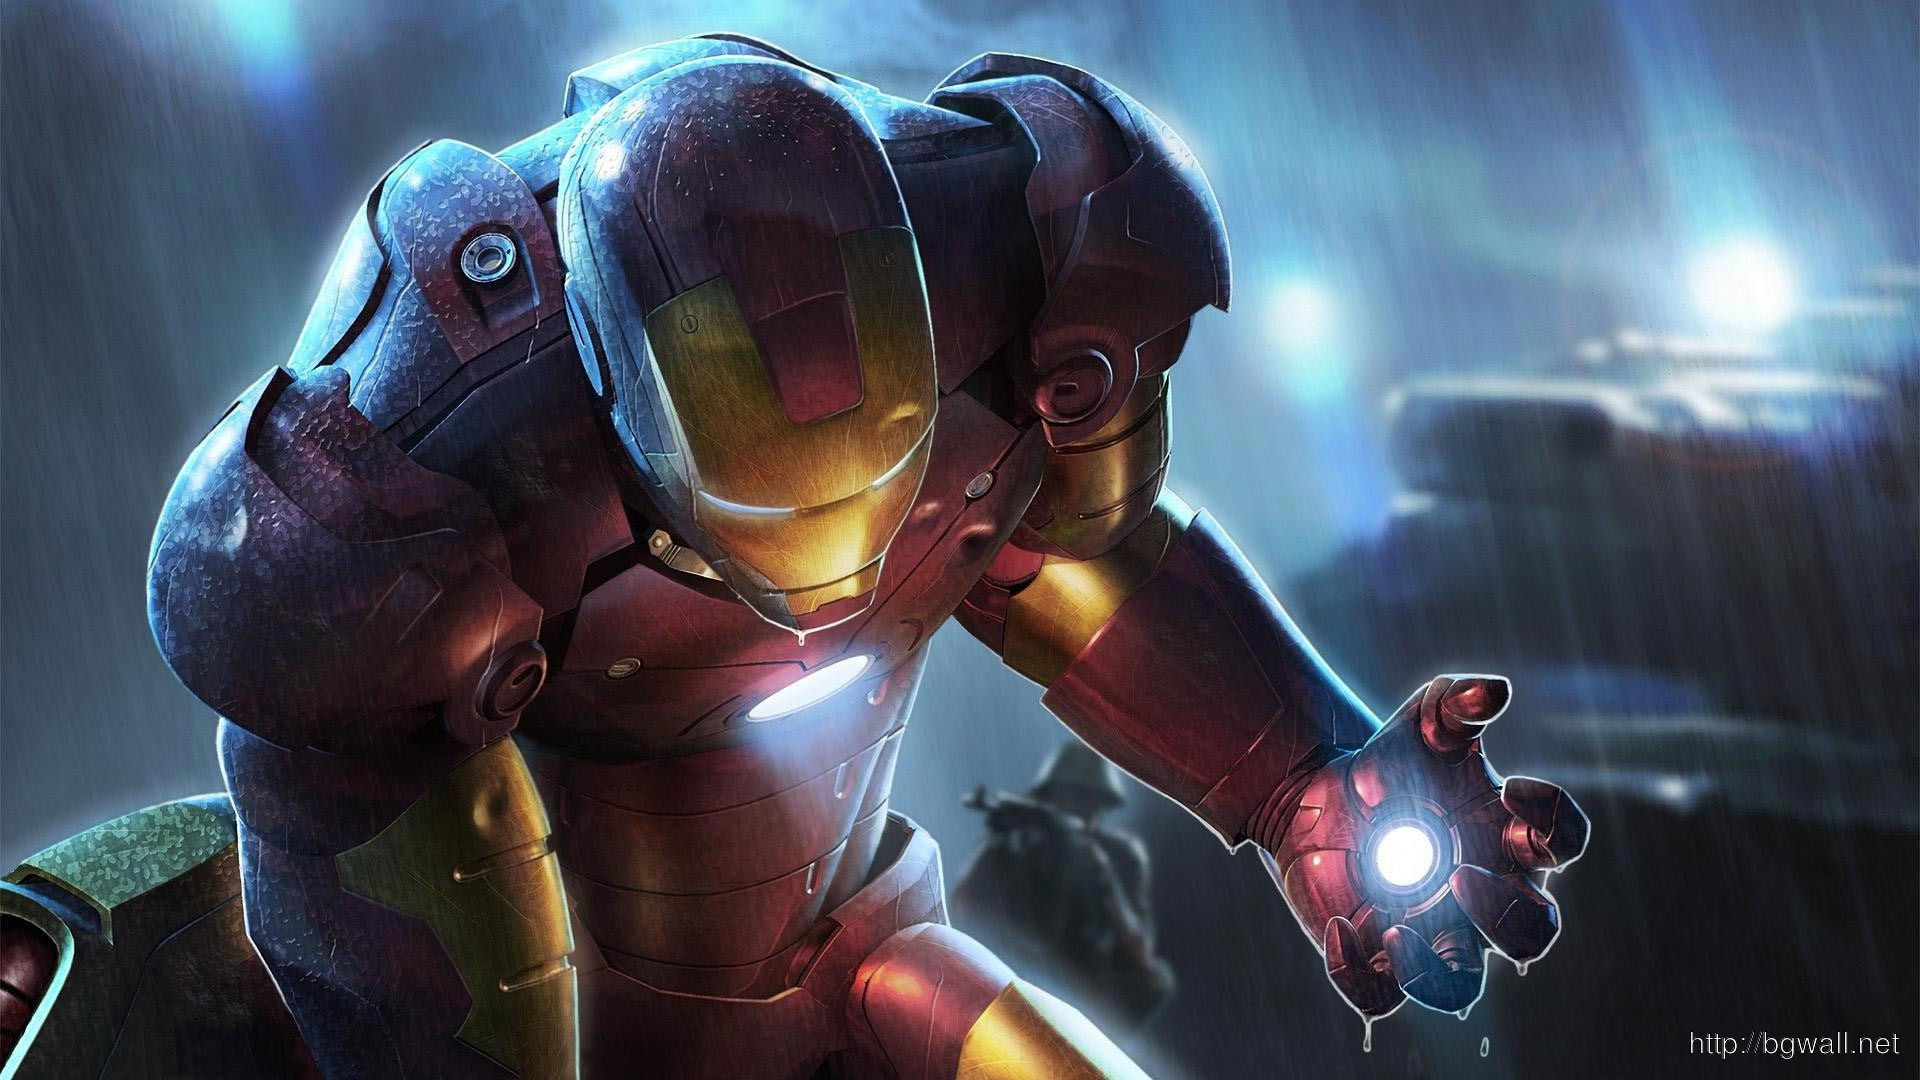 Car Hd Wallpapers Free Download For Pc Iron Man Wallpaper 1068 Background Wallpaper Hd